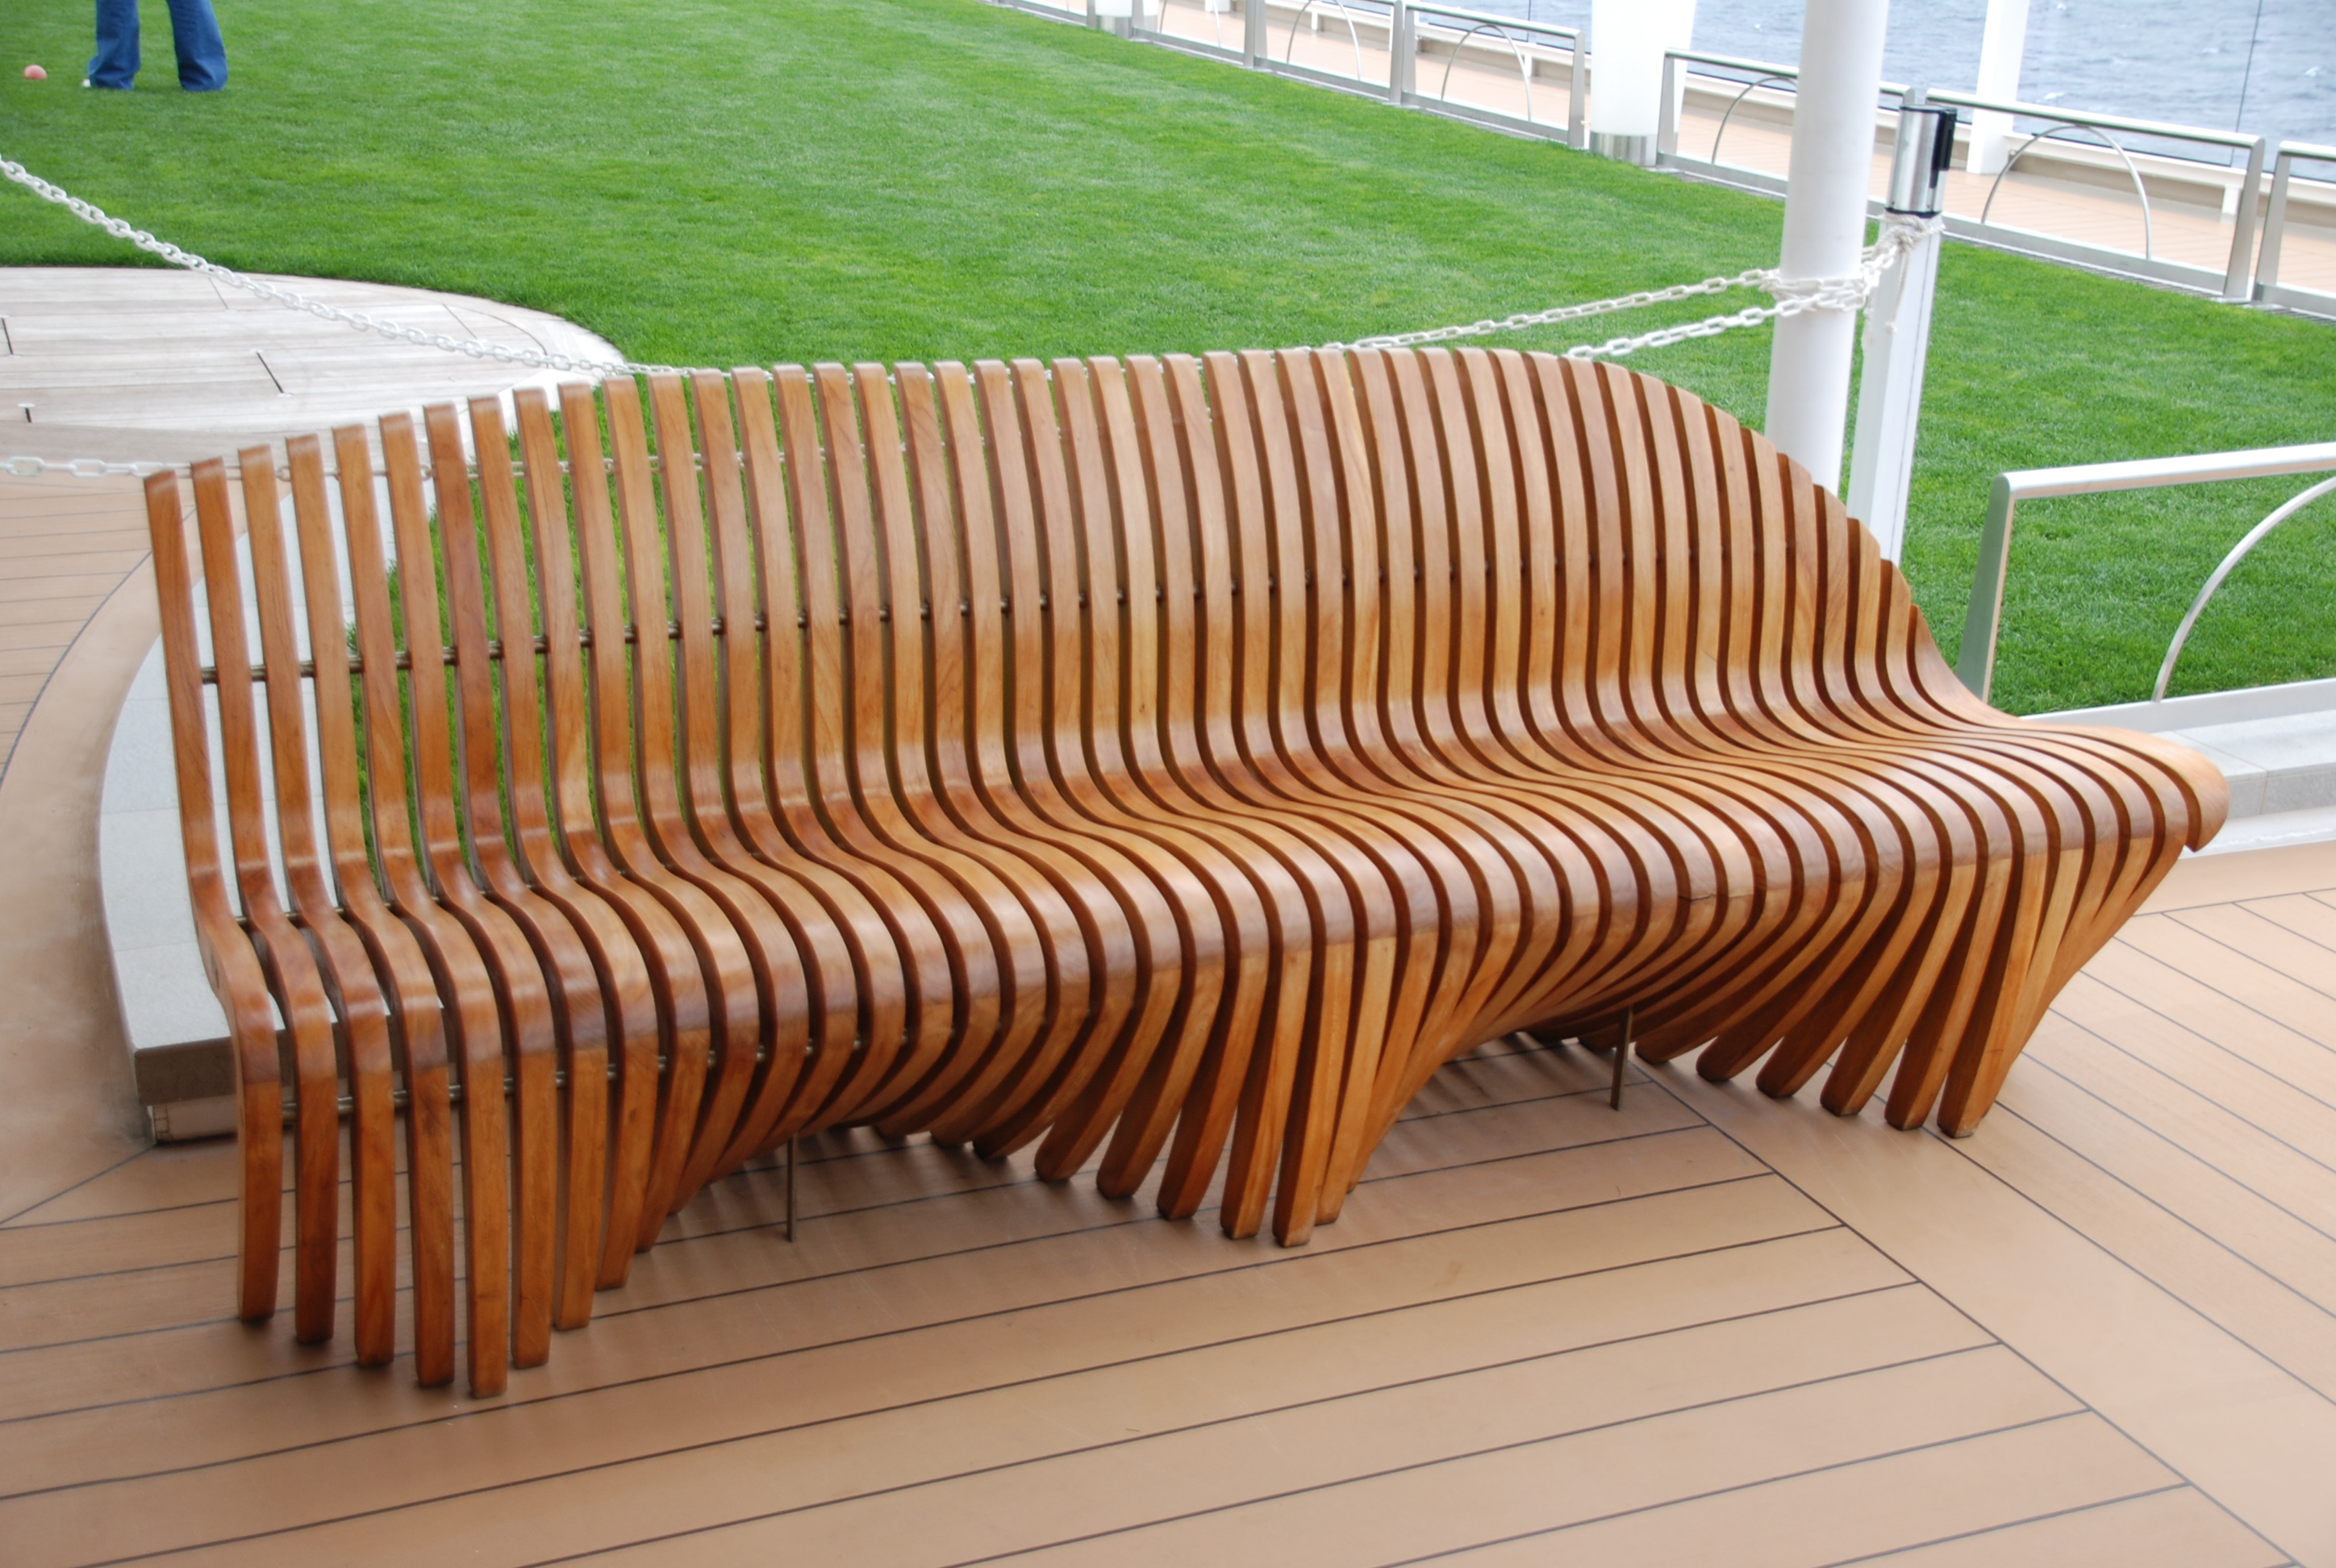 File:Teak Deck Chair Aboard The Celebrity Equinox On A Transatlantic Cruise  (6690586571)